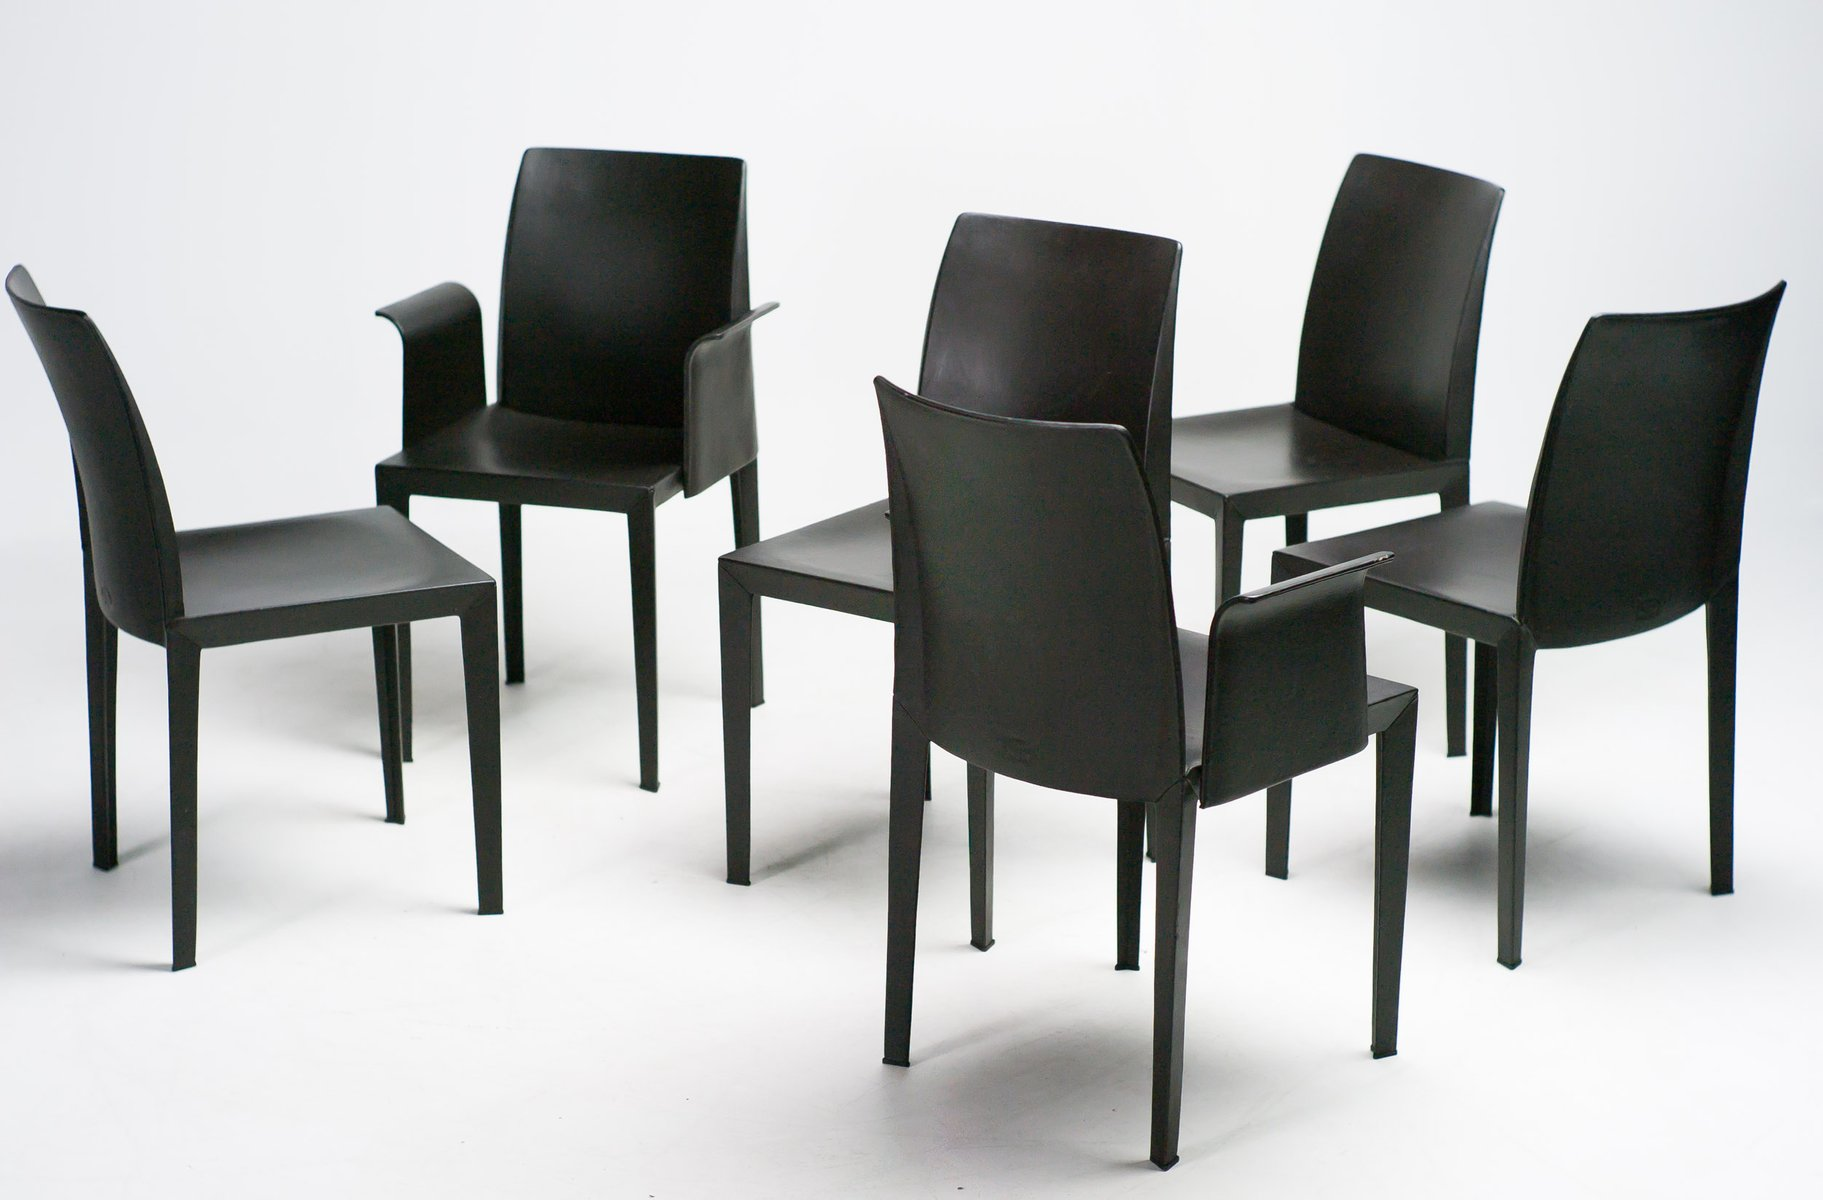 lola dining chairs by luigi cerri for poltrona frau set. Black Bedroom Furniture Sets. Home Design Ideas